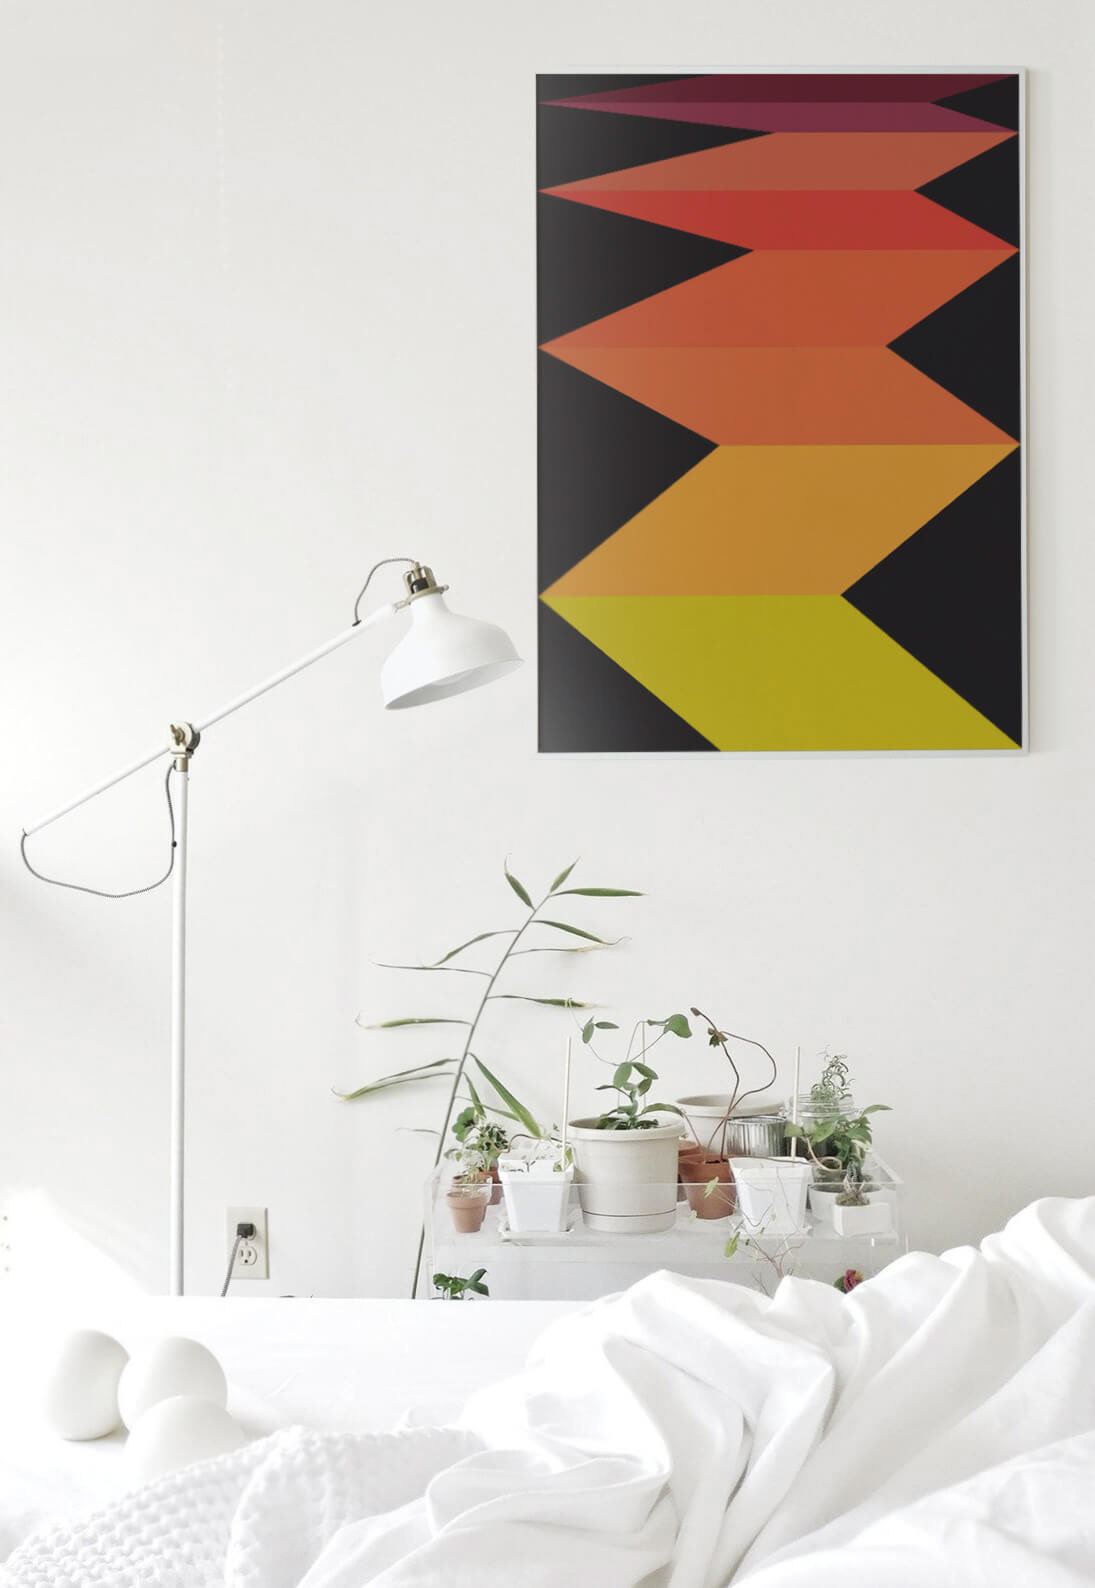 abstract art geometry home minimal prints shop store